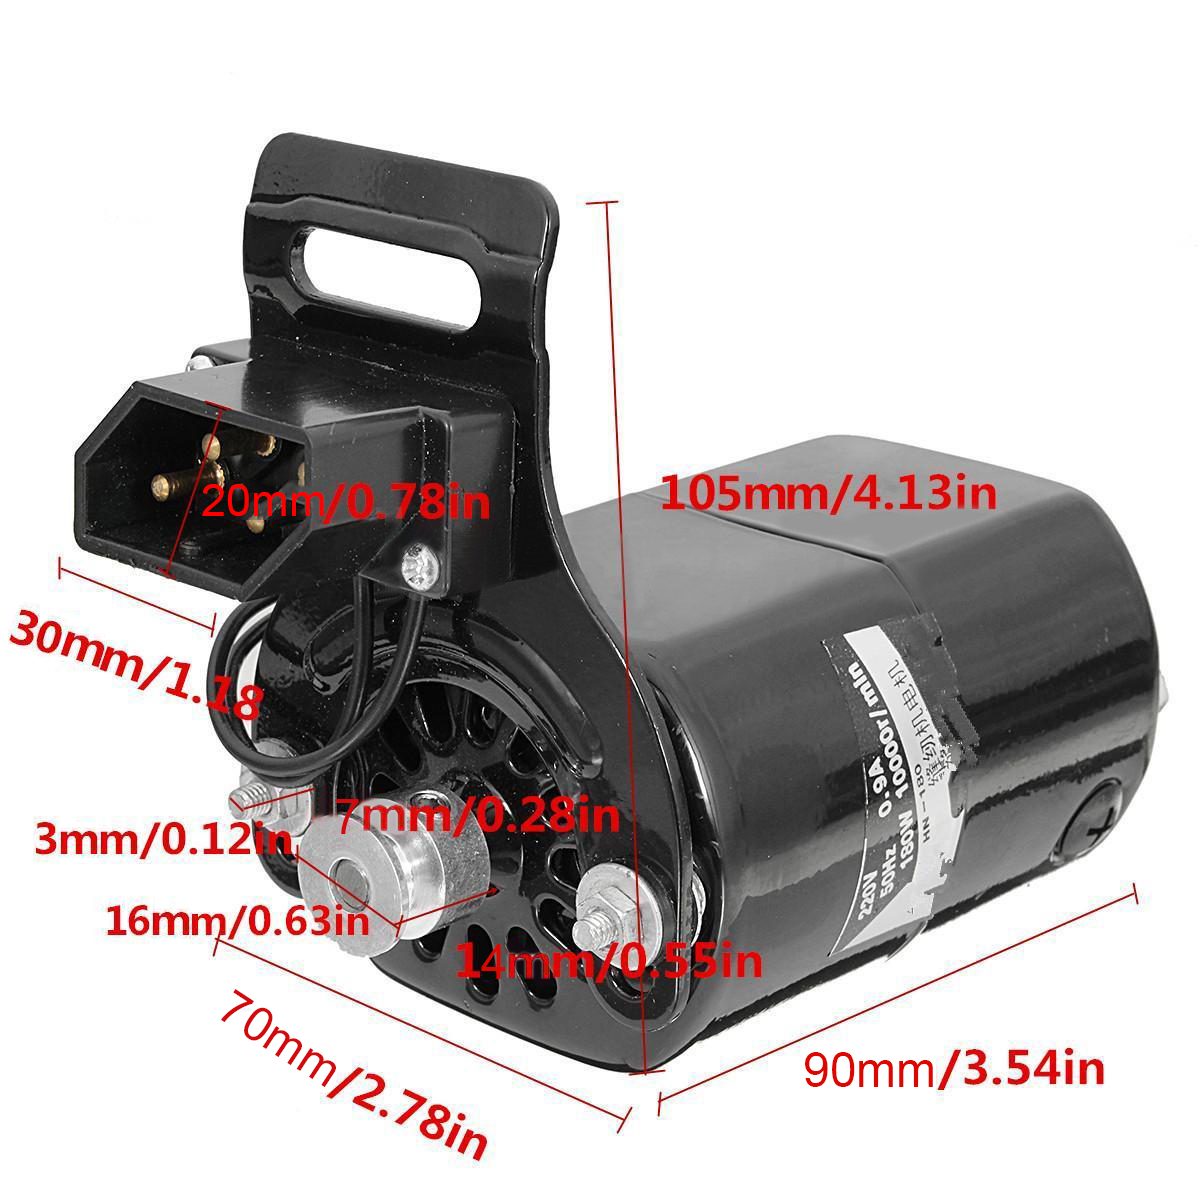 New Black Domestic Household Sewing Machine Electric Motor 220V AC 180W 0.9A 5000 rpm + Low Noise Speed Pedal Controller Mayitr